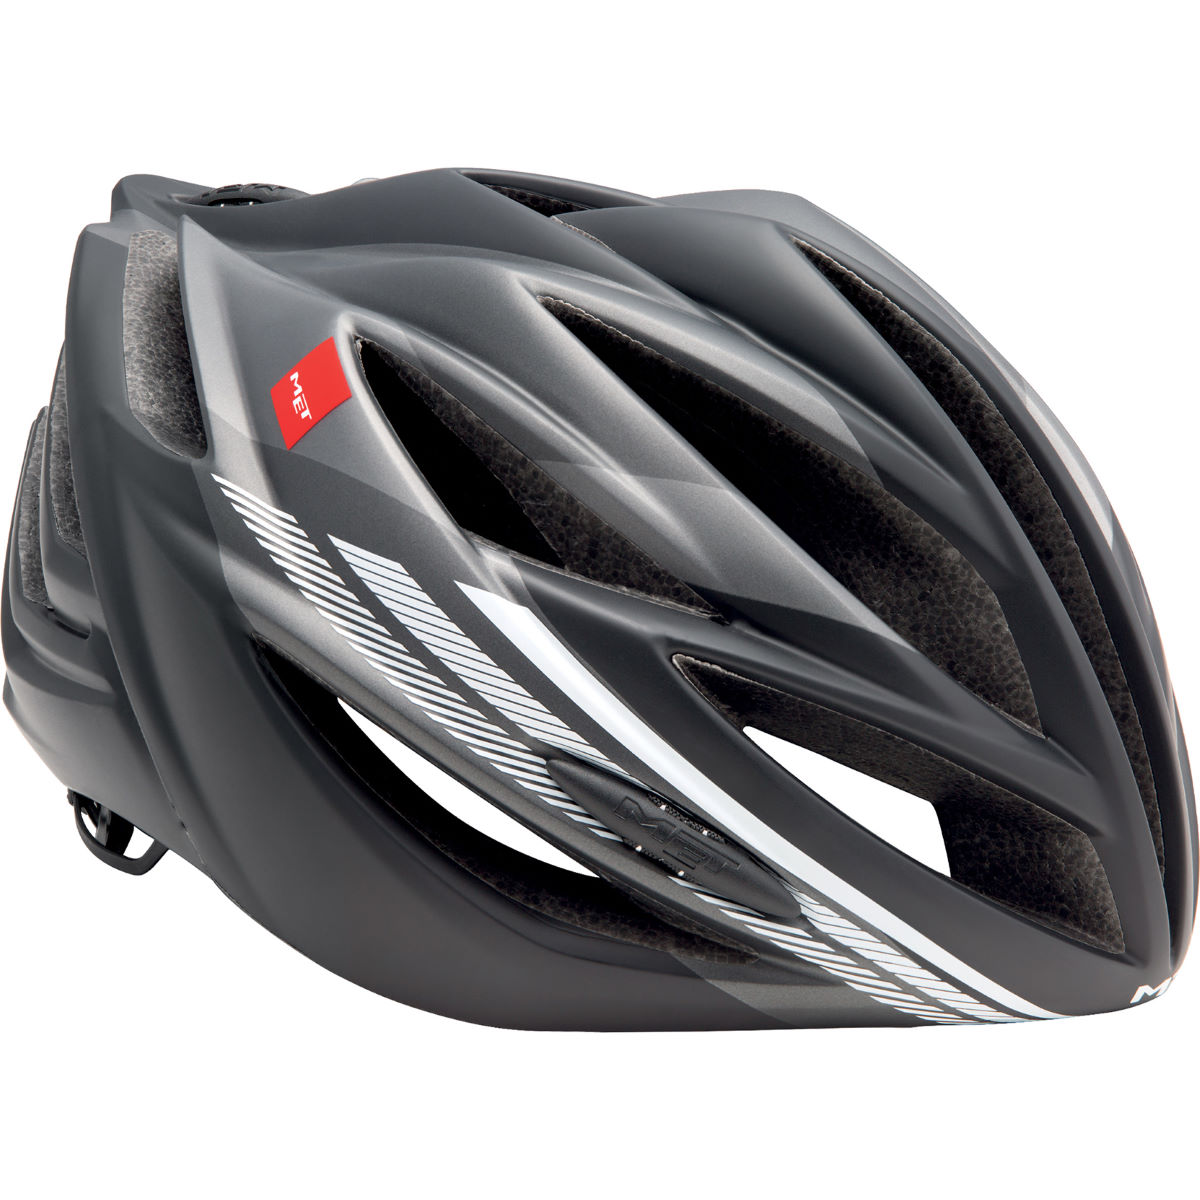 Casque de route MET Forte - Medium Anthracite/White Casques de route